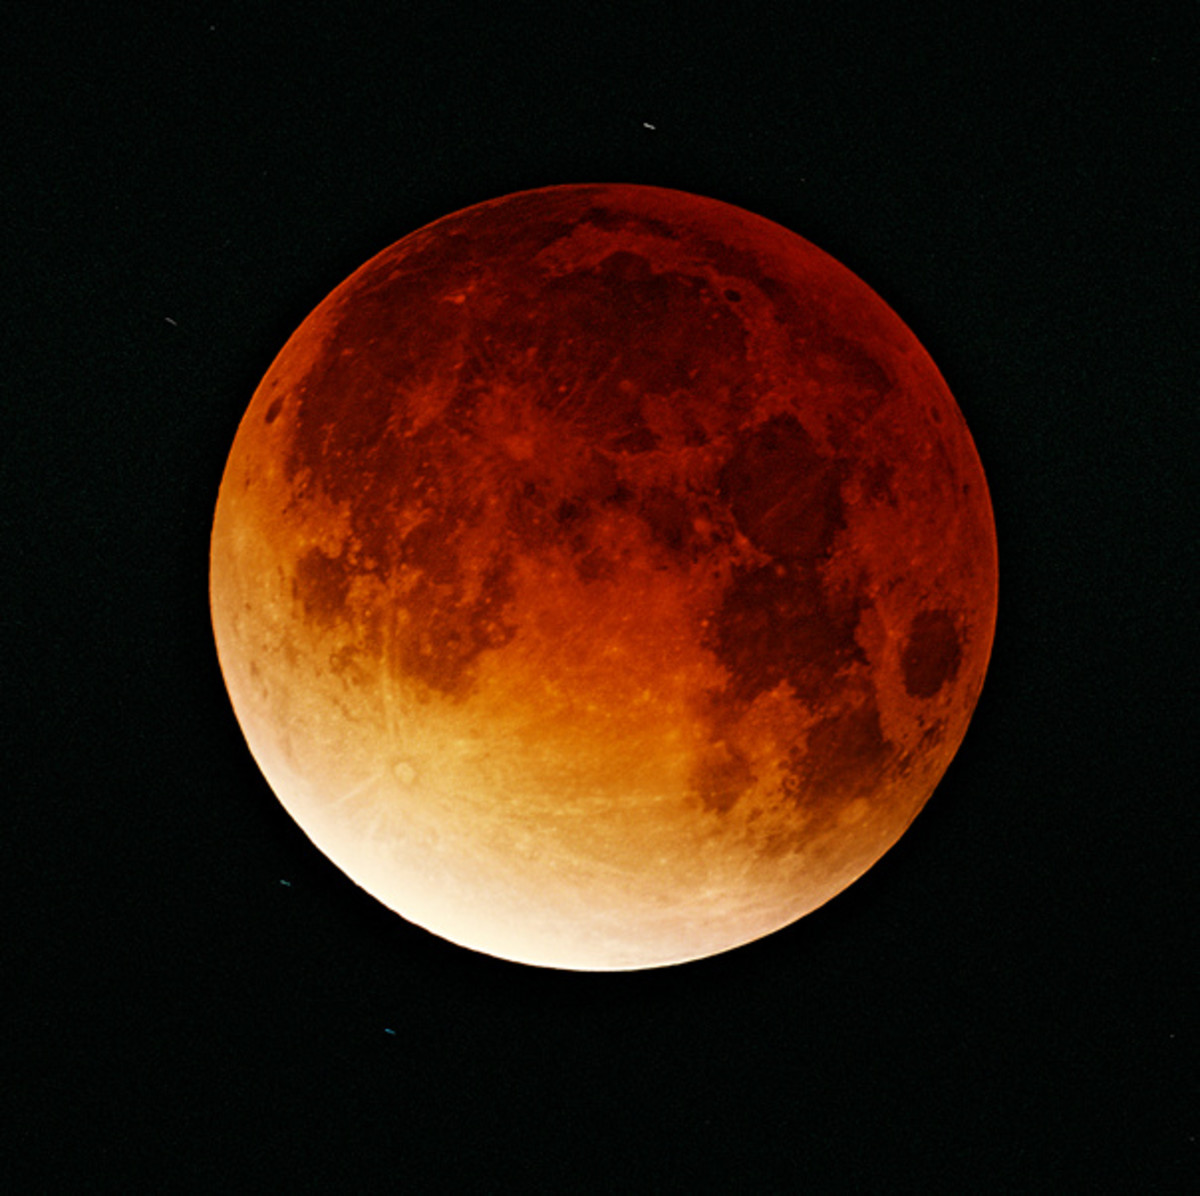 The moon during a lunar eclipse